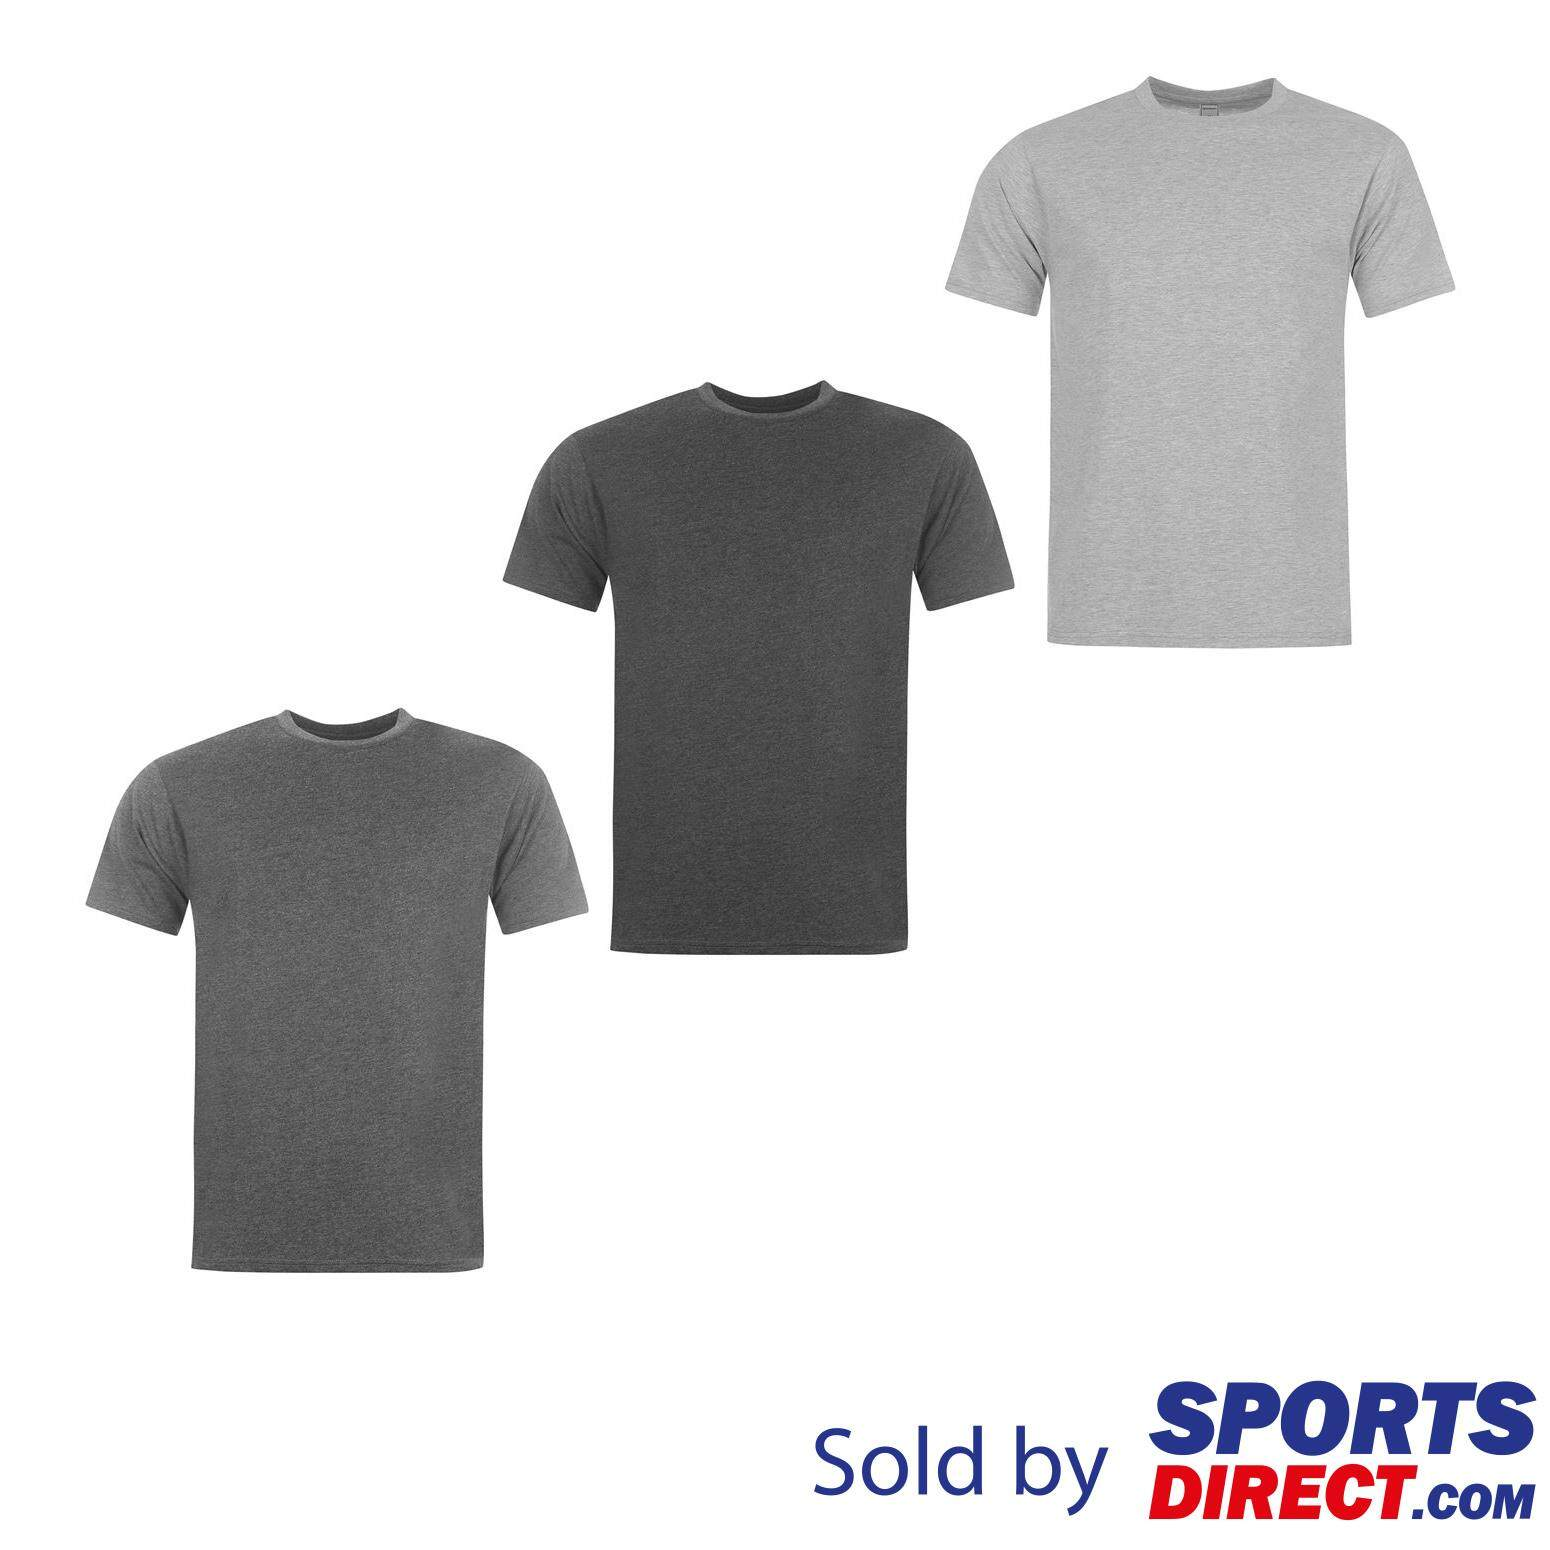 ff1e71d7 Donnay 3 Pack T Shirts Mens (Grey Marl/Charcoal Marl/Black)